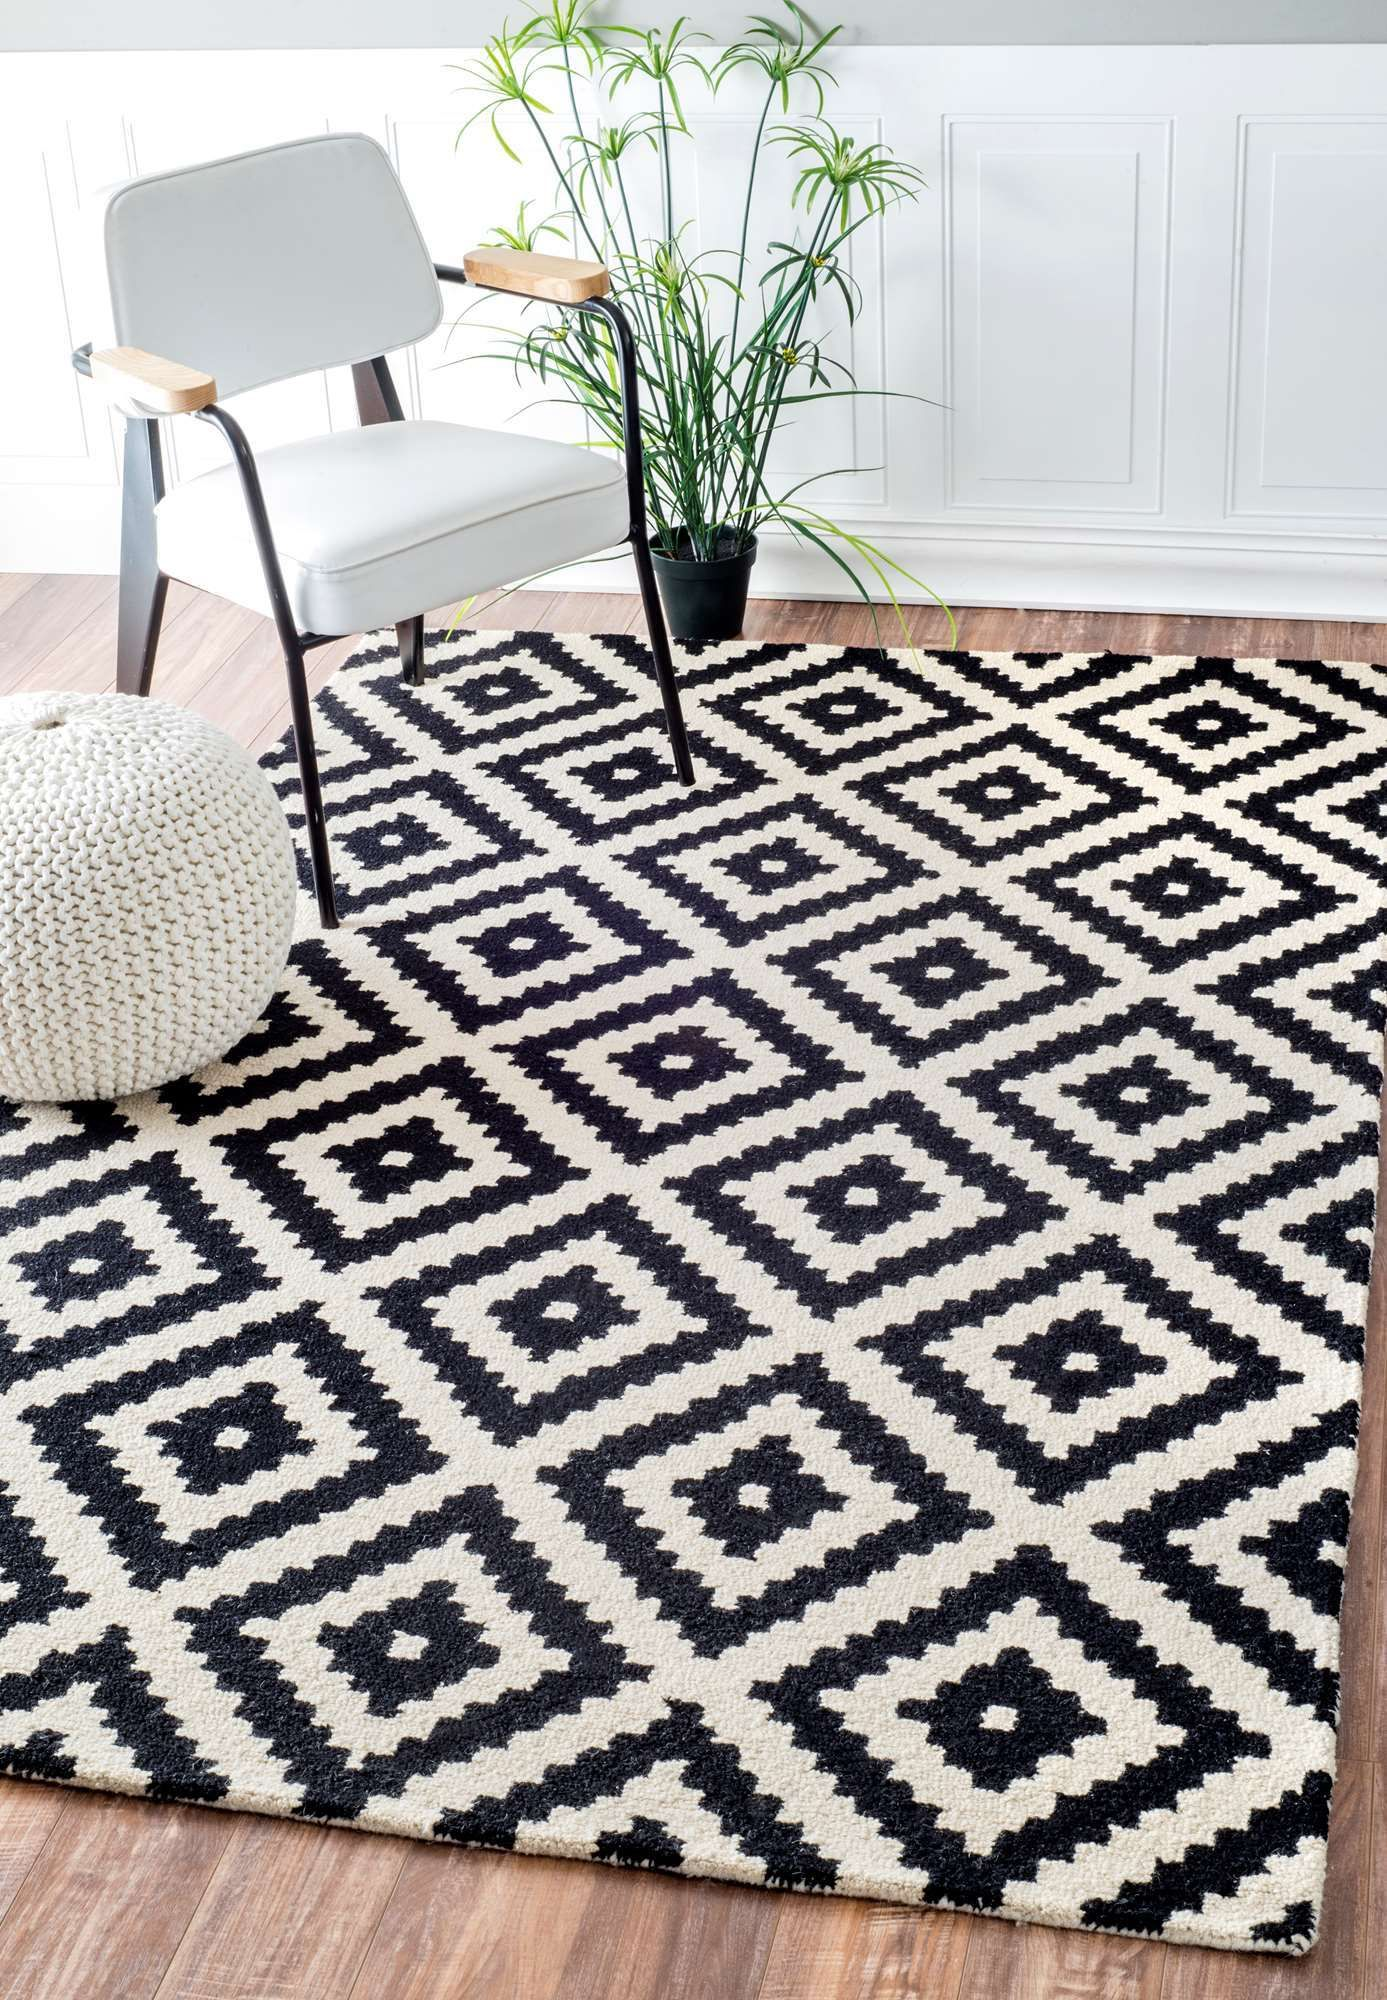 The 10 Best Places To Buy Area Rugs Online With Images Buy